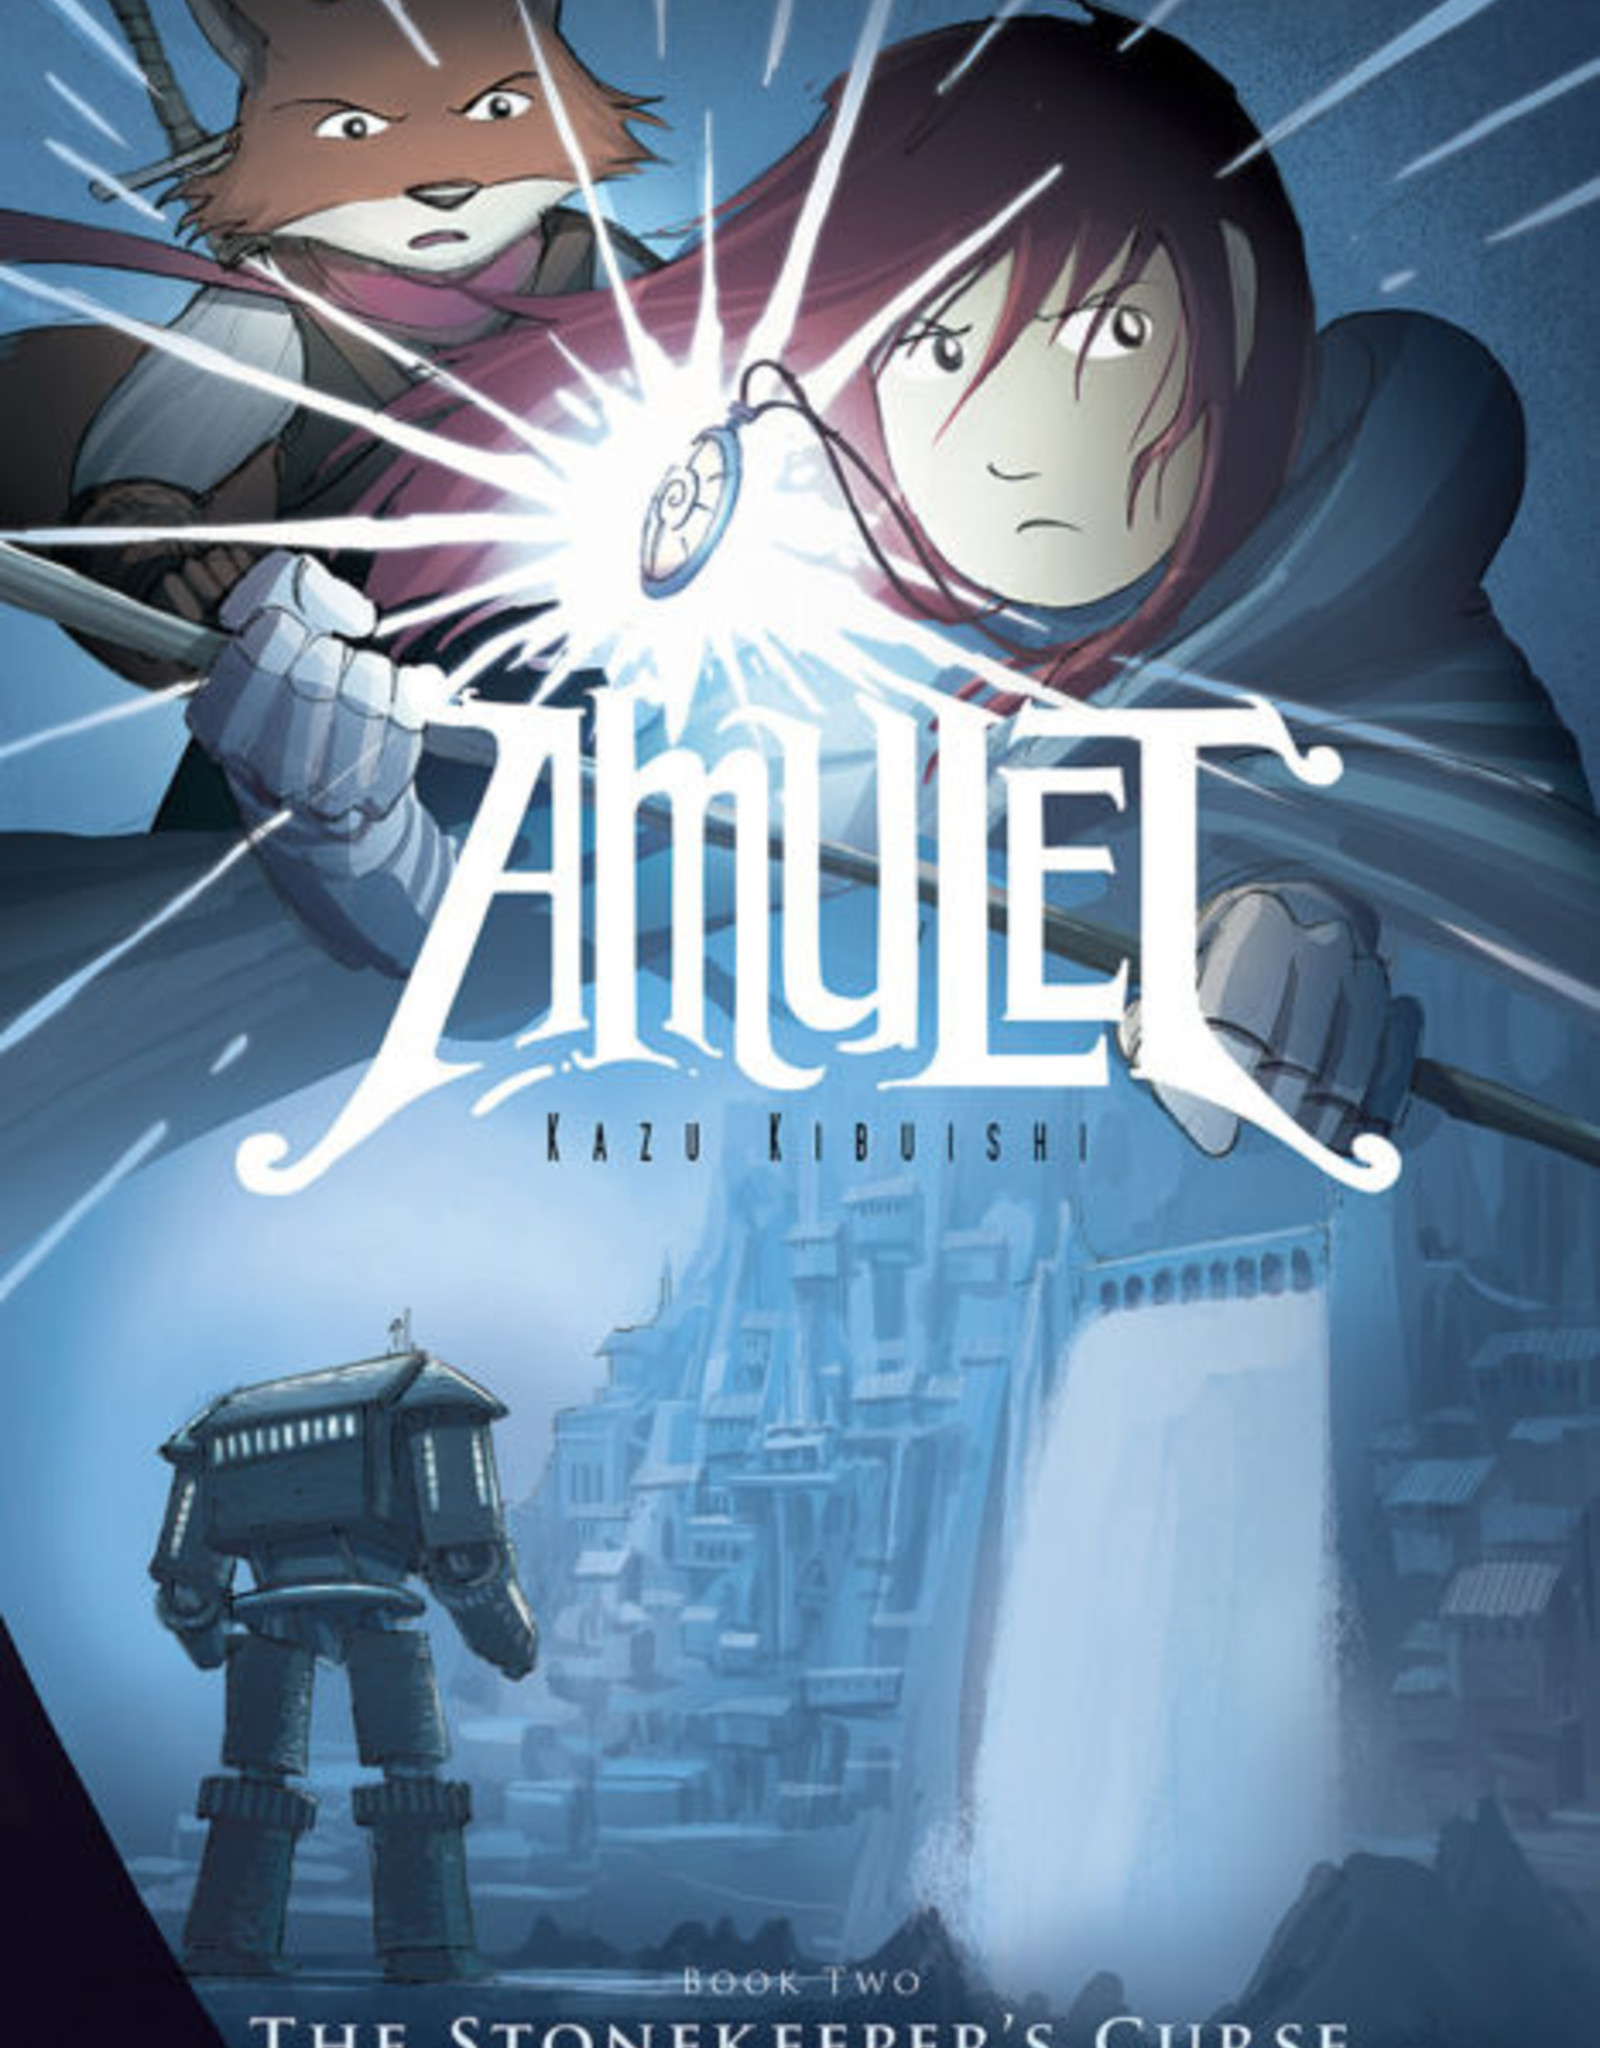 Scholastic Amulet #02, The Stonekeeper's Curse Graphic Novel - Paperback